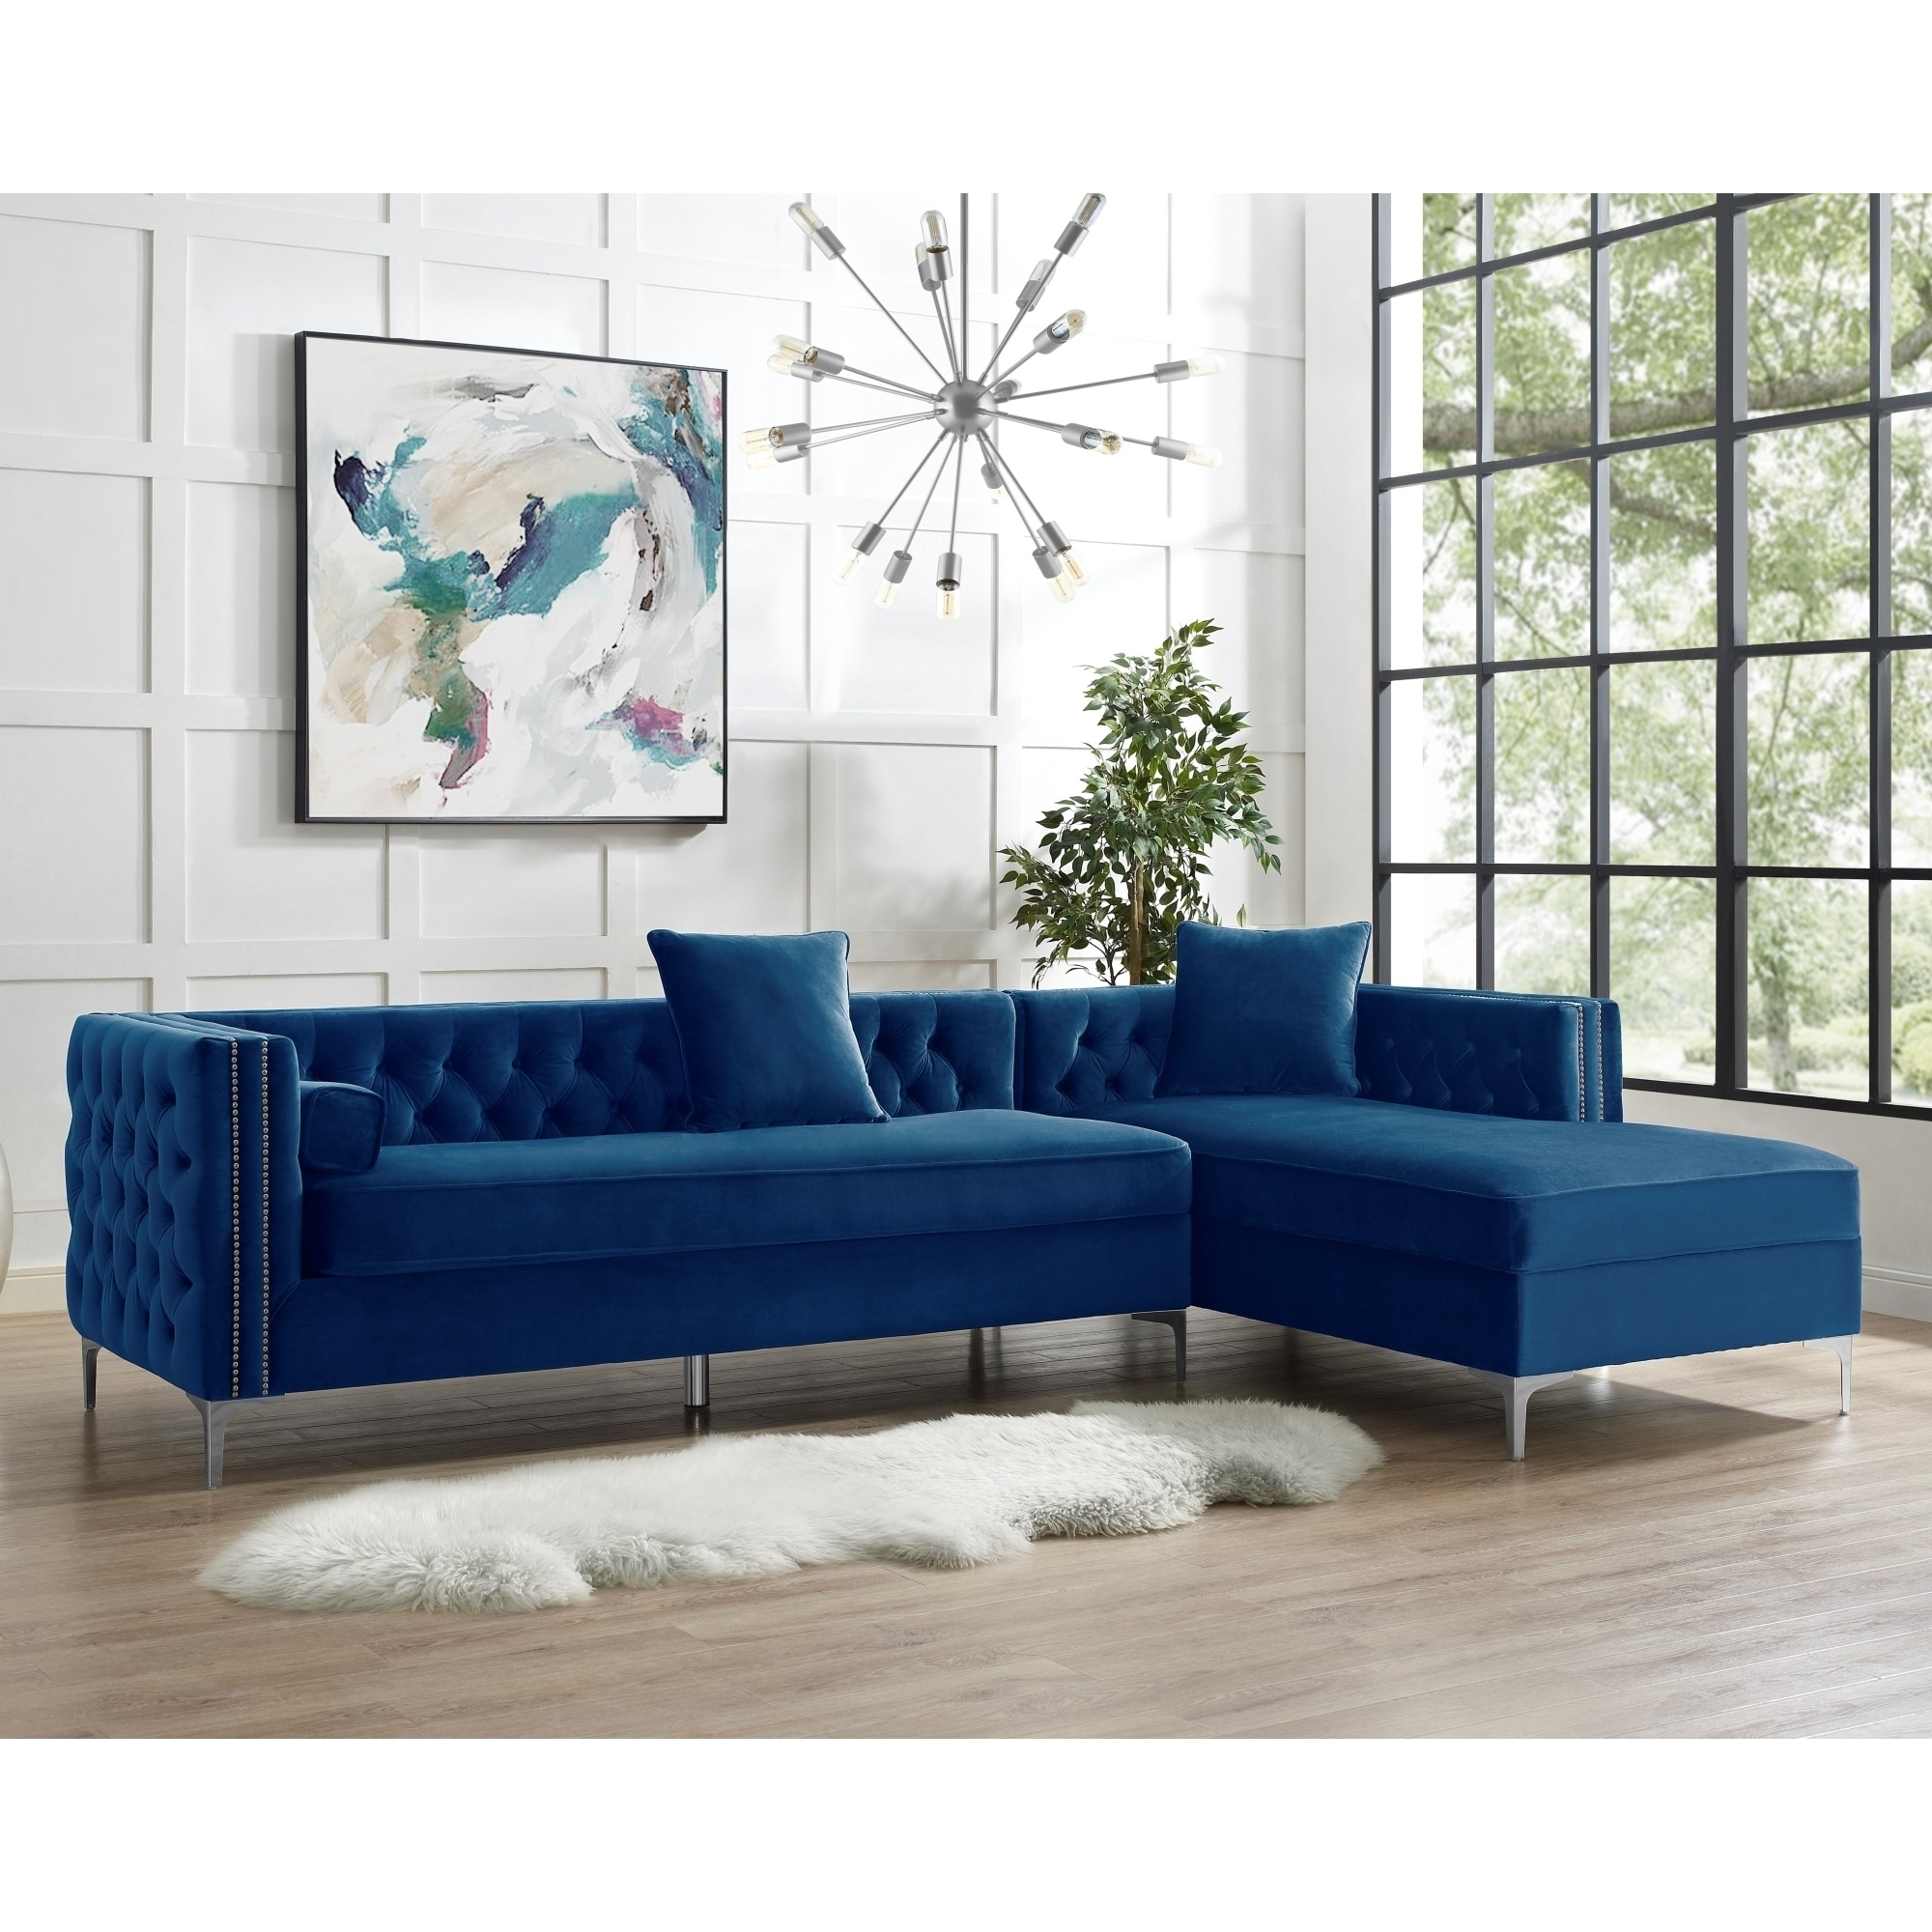 """115"""" Dante Velvet Button Tufted Left Facing Chaise Intended For Famous Monet Right Facing Sectional Sofas (View 1 of 25)"""